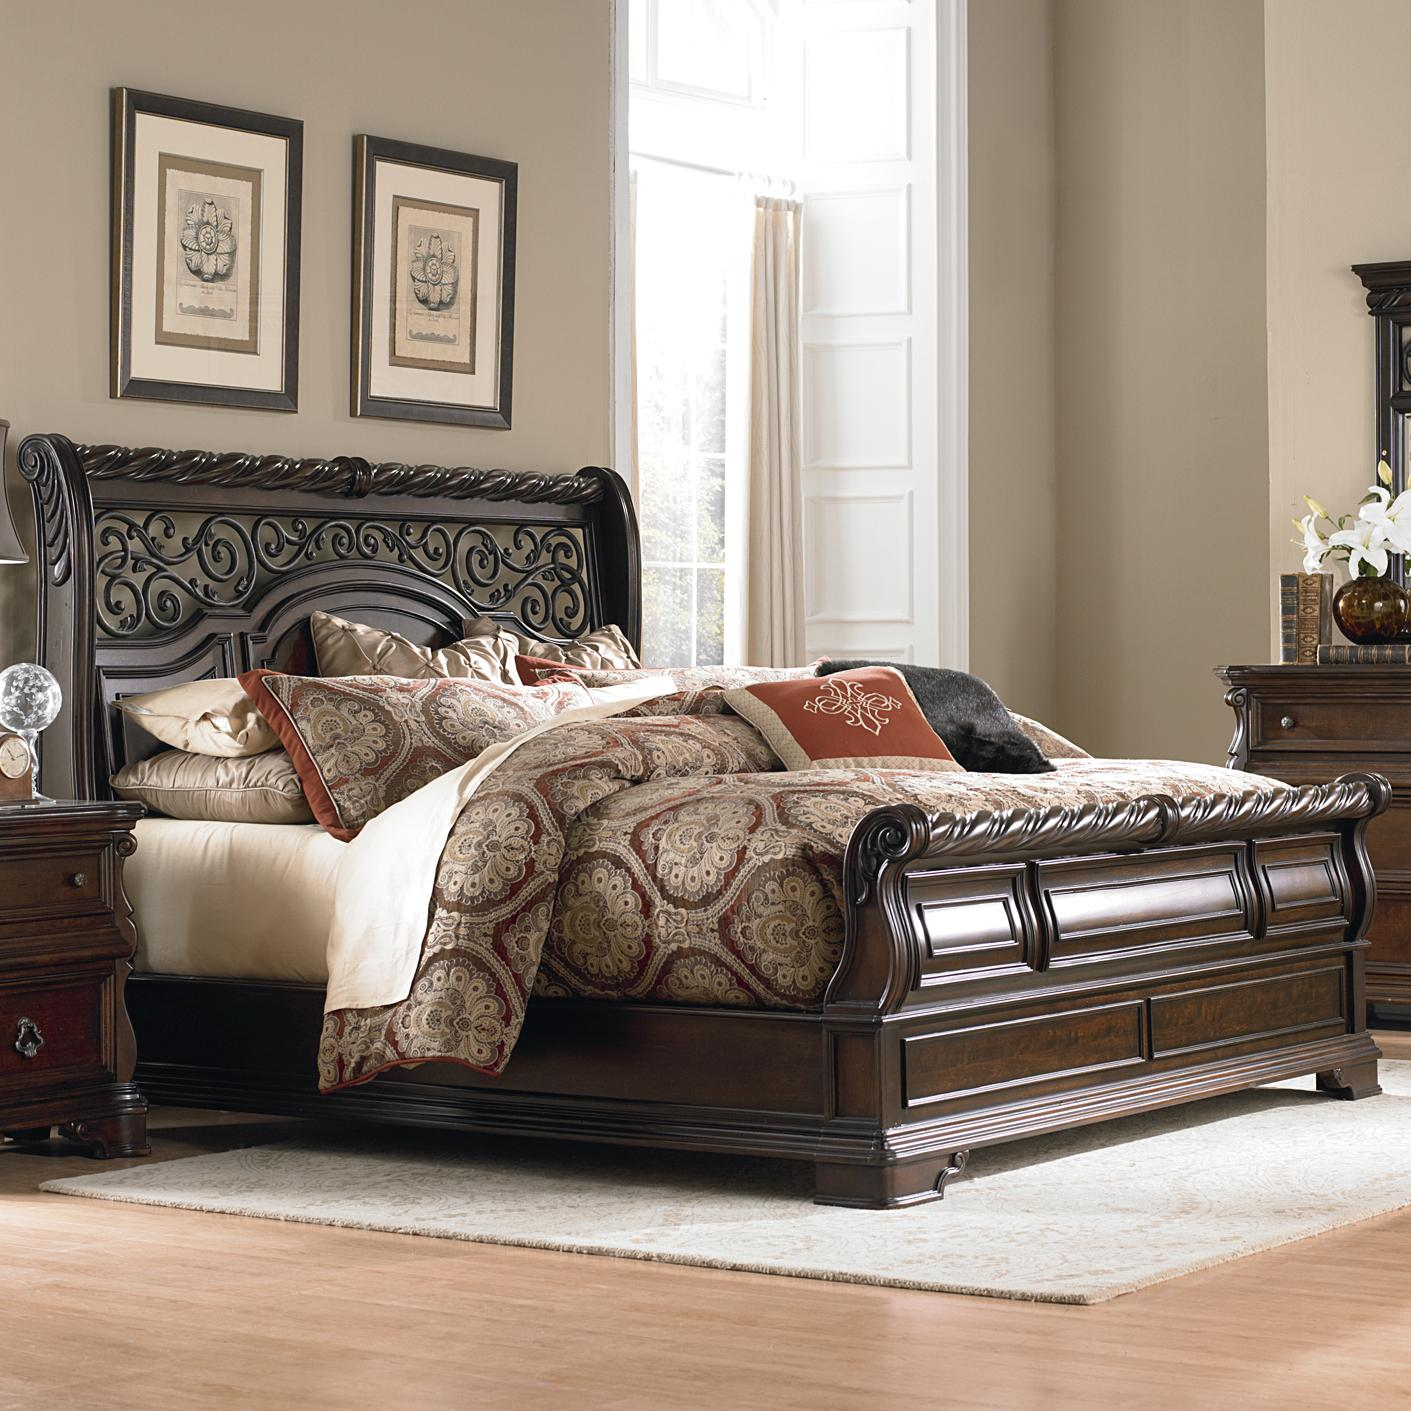 Queen Traditional Sleigh Bed. Queen Traditional Sleigh Bed by Liberty Furniture   Wolf and